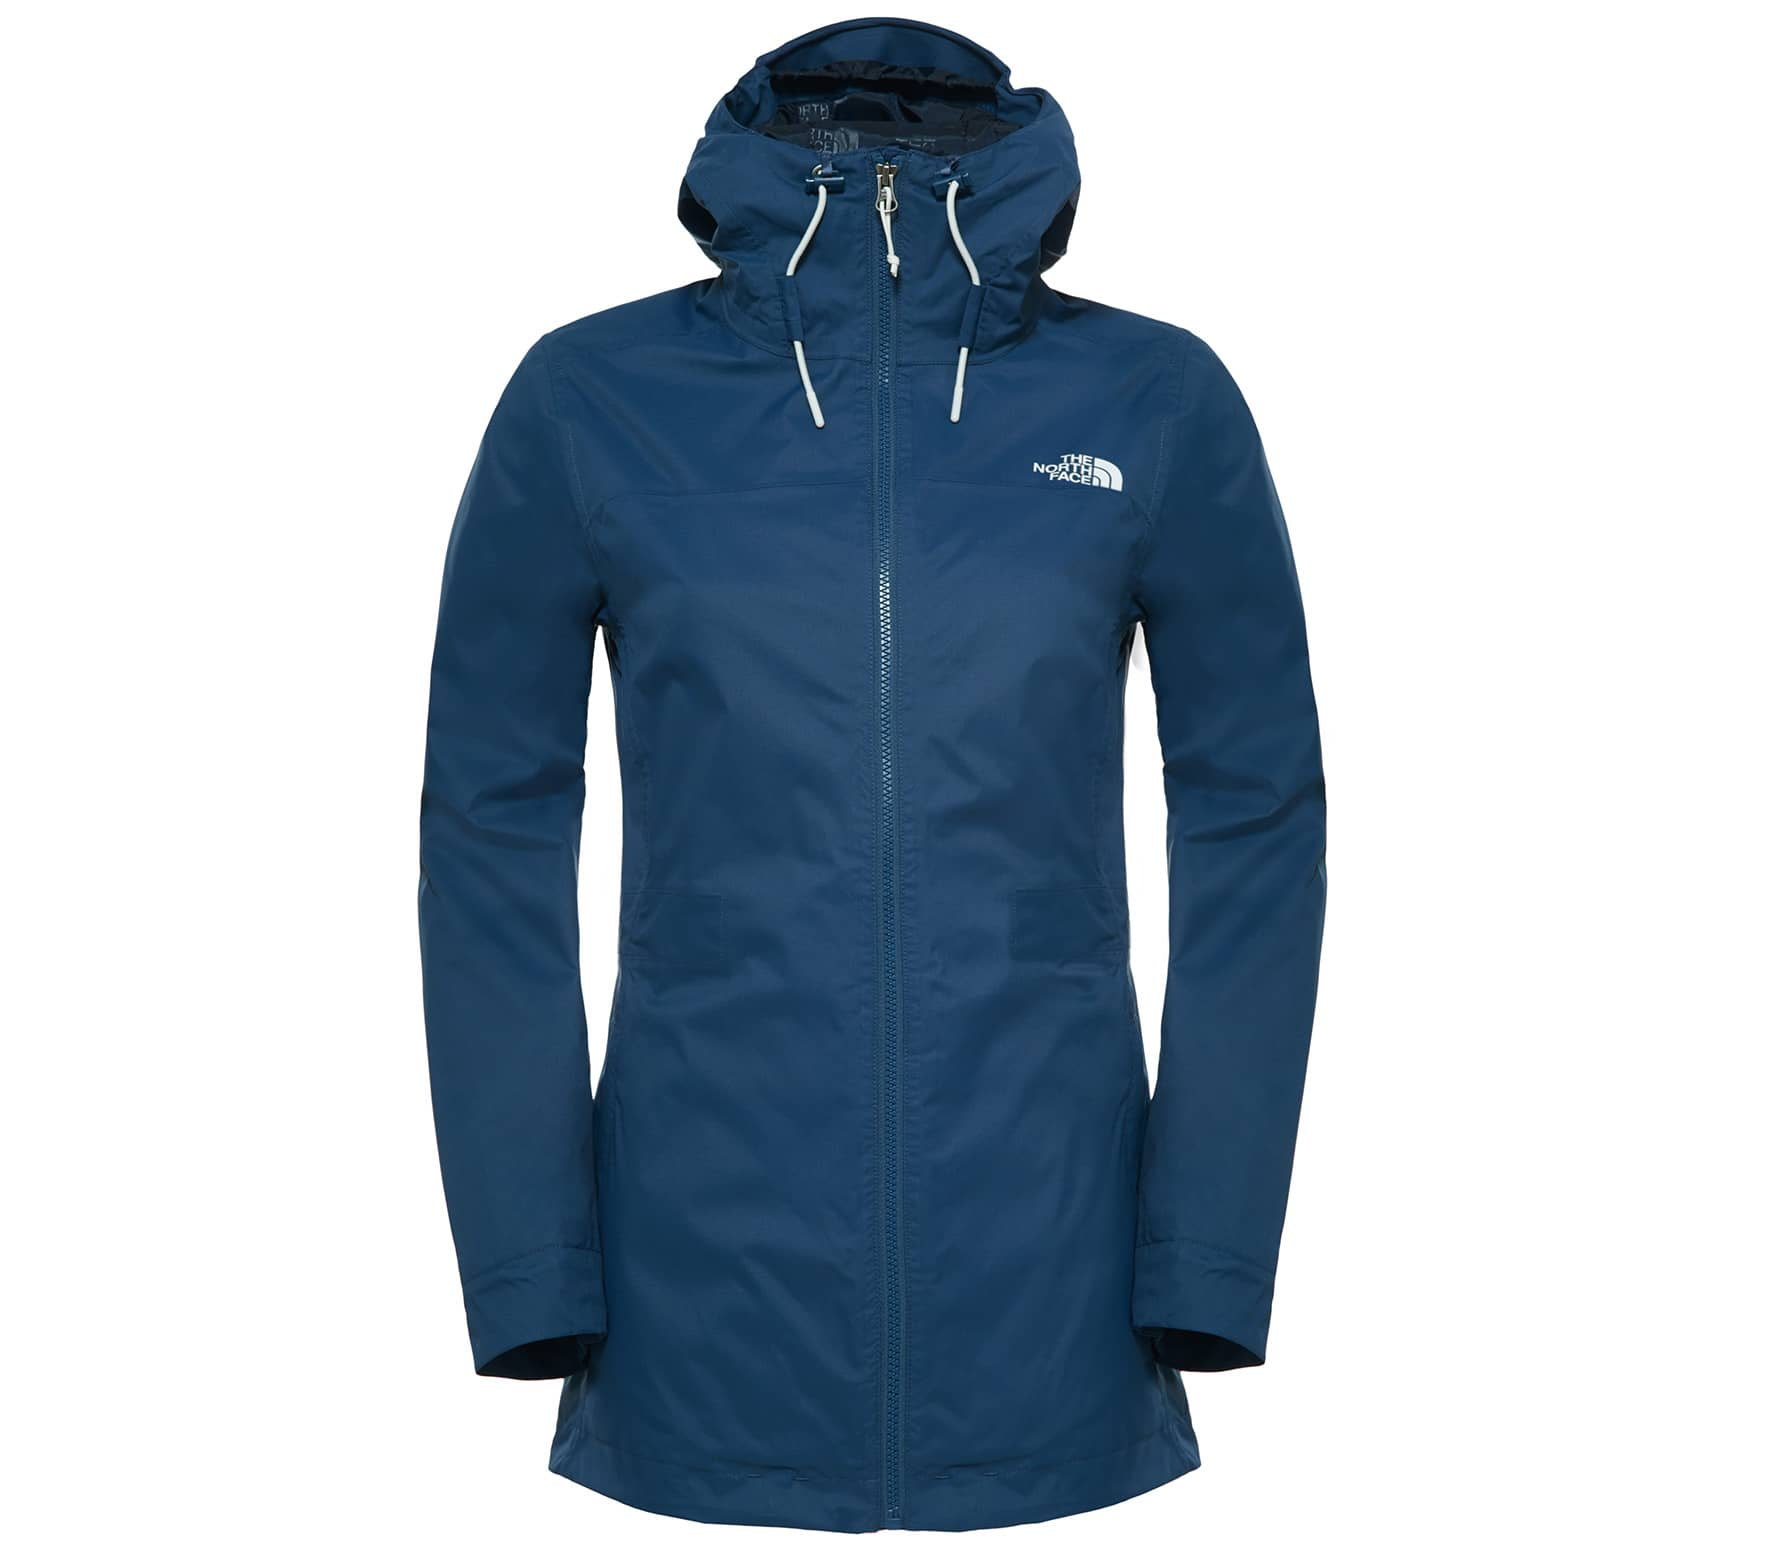 9ee1819feea4 The North Face - Morton Triclimate Damen Doppeljacke (blau weiß ...